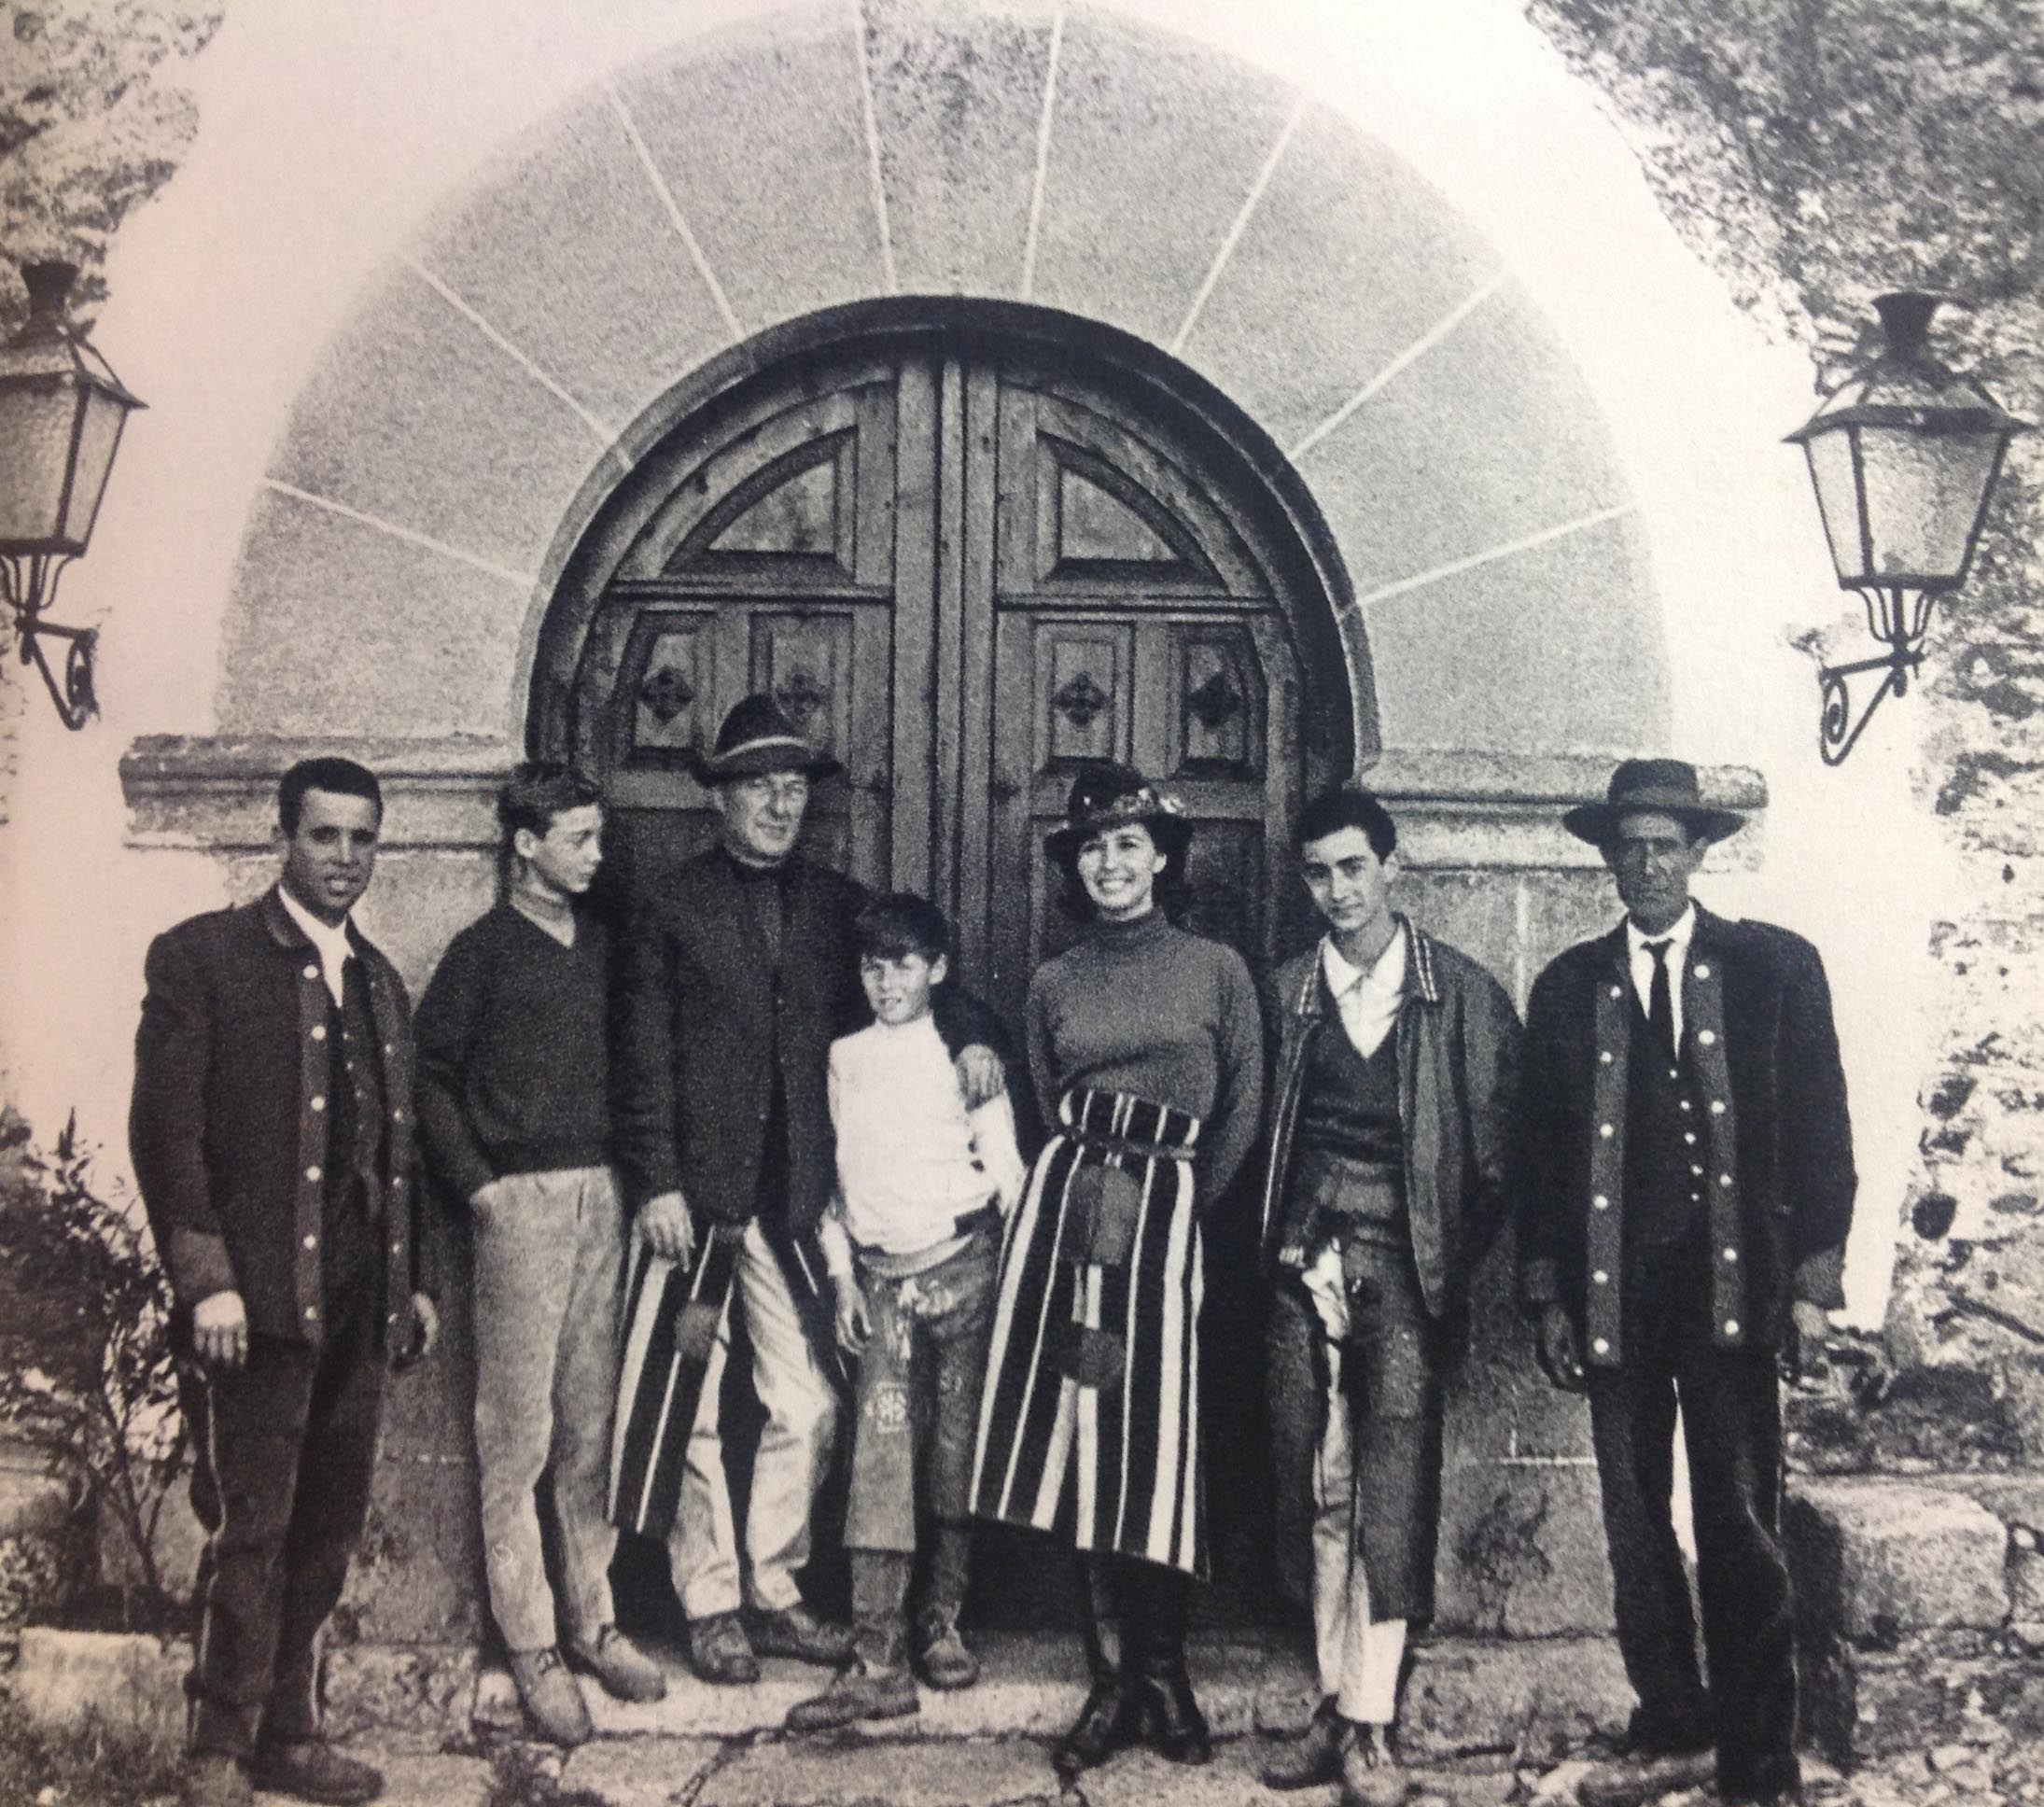 Finca Pascualete. Countess of Romanones with her family at their country home in Extremadura